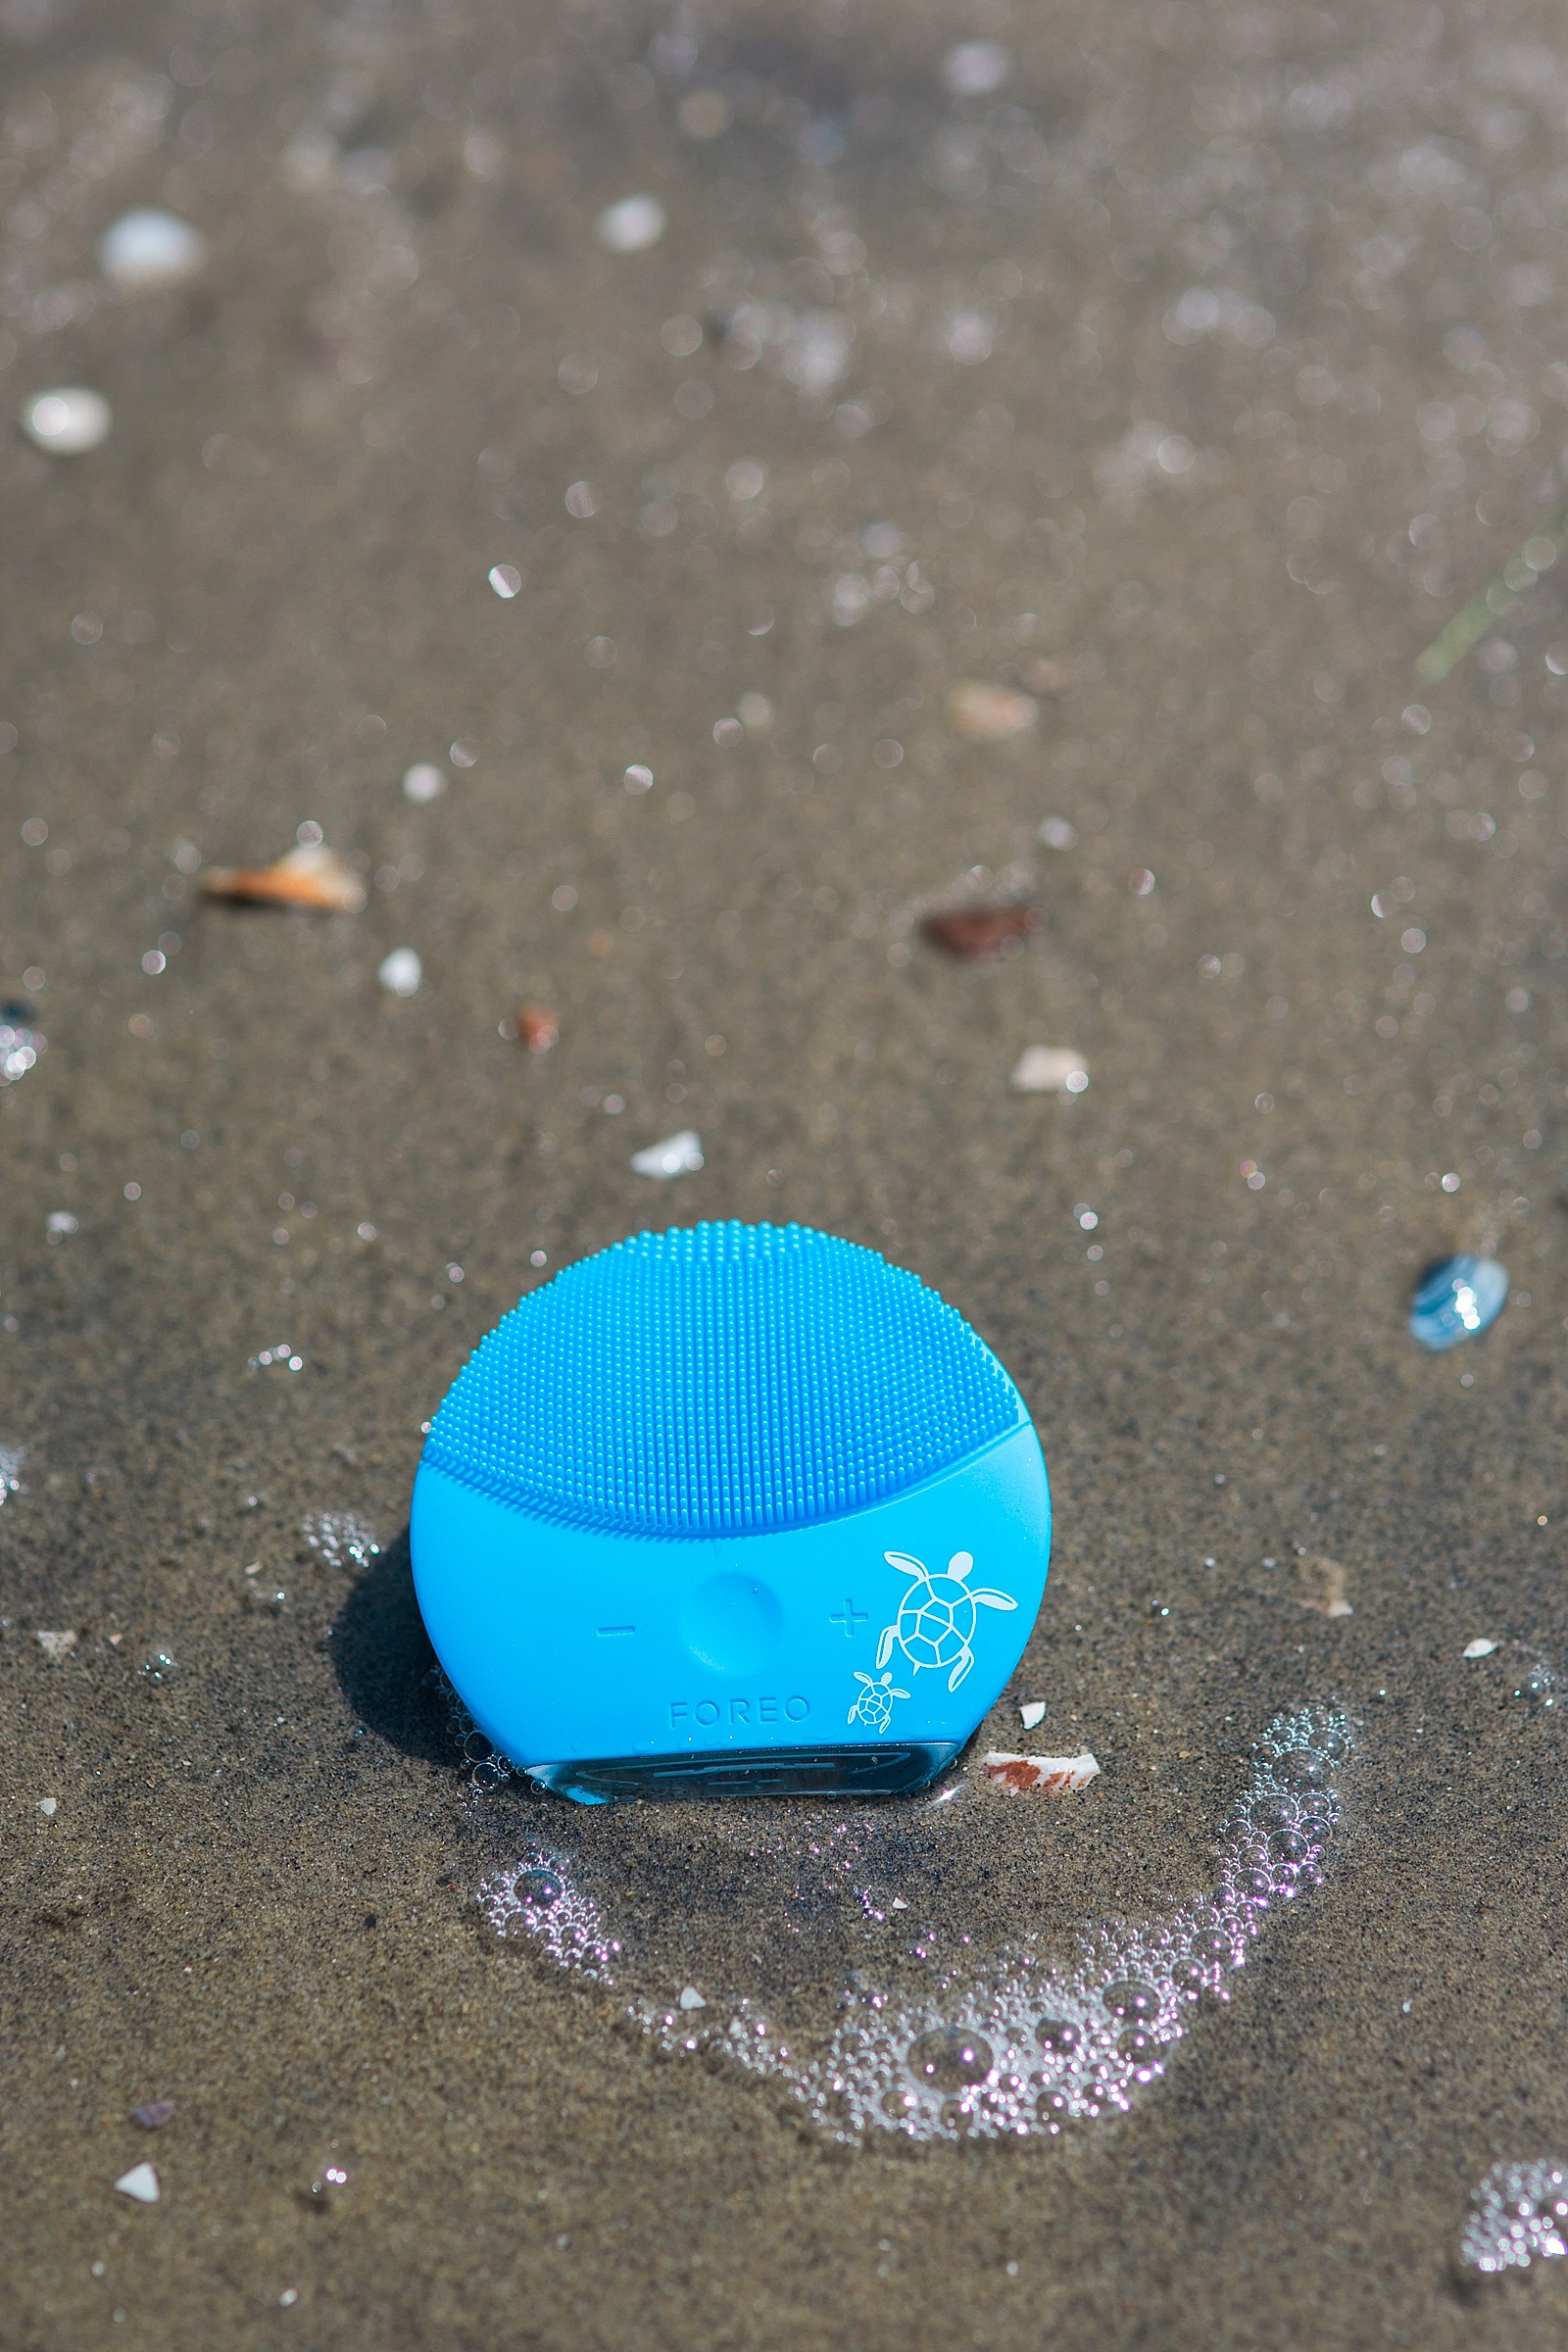 foreo-save-the-sea-luna-mini-2-phoenix-photographer-faces-of-phoenix-photographer-copyright-diana-elizabeth-photography_0134